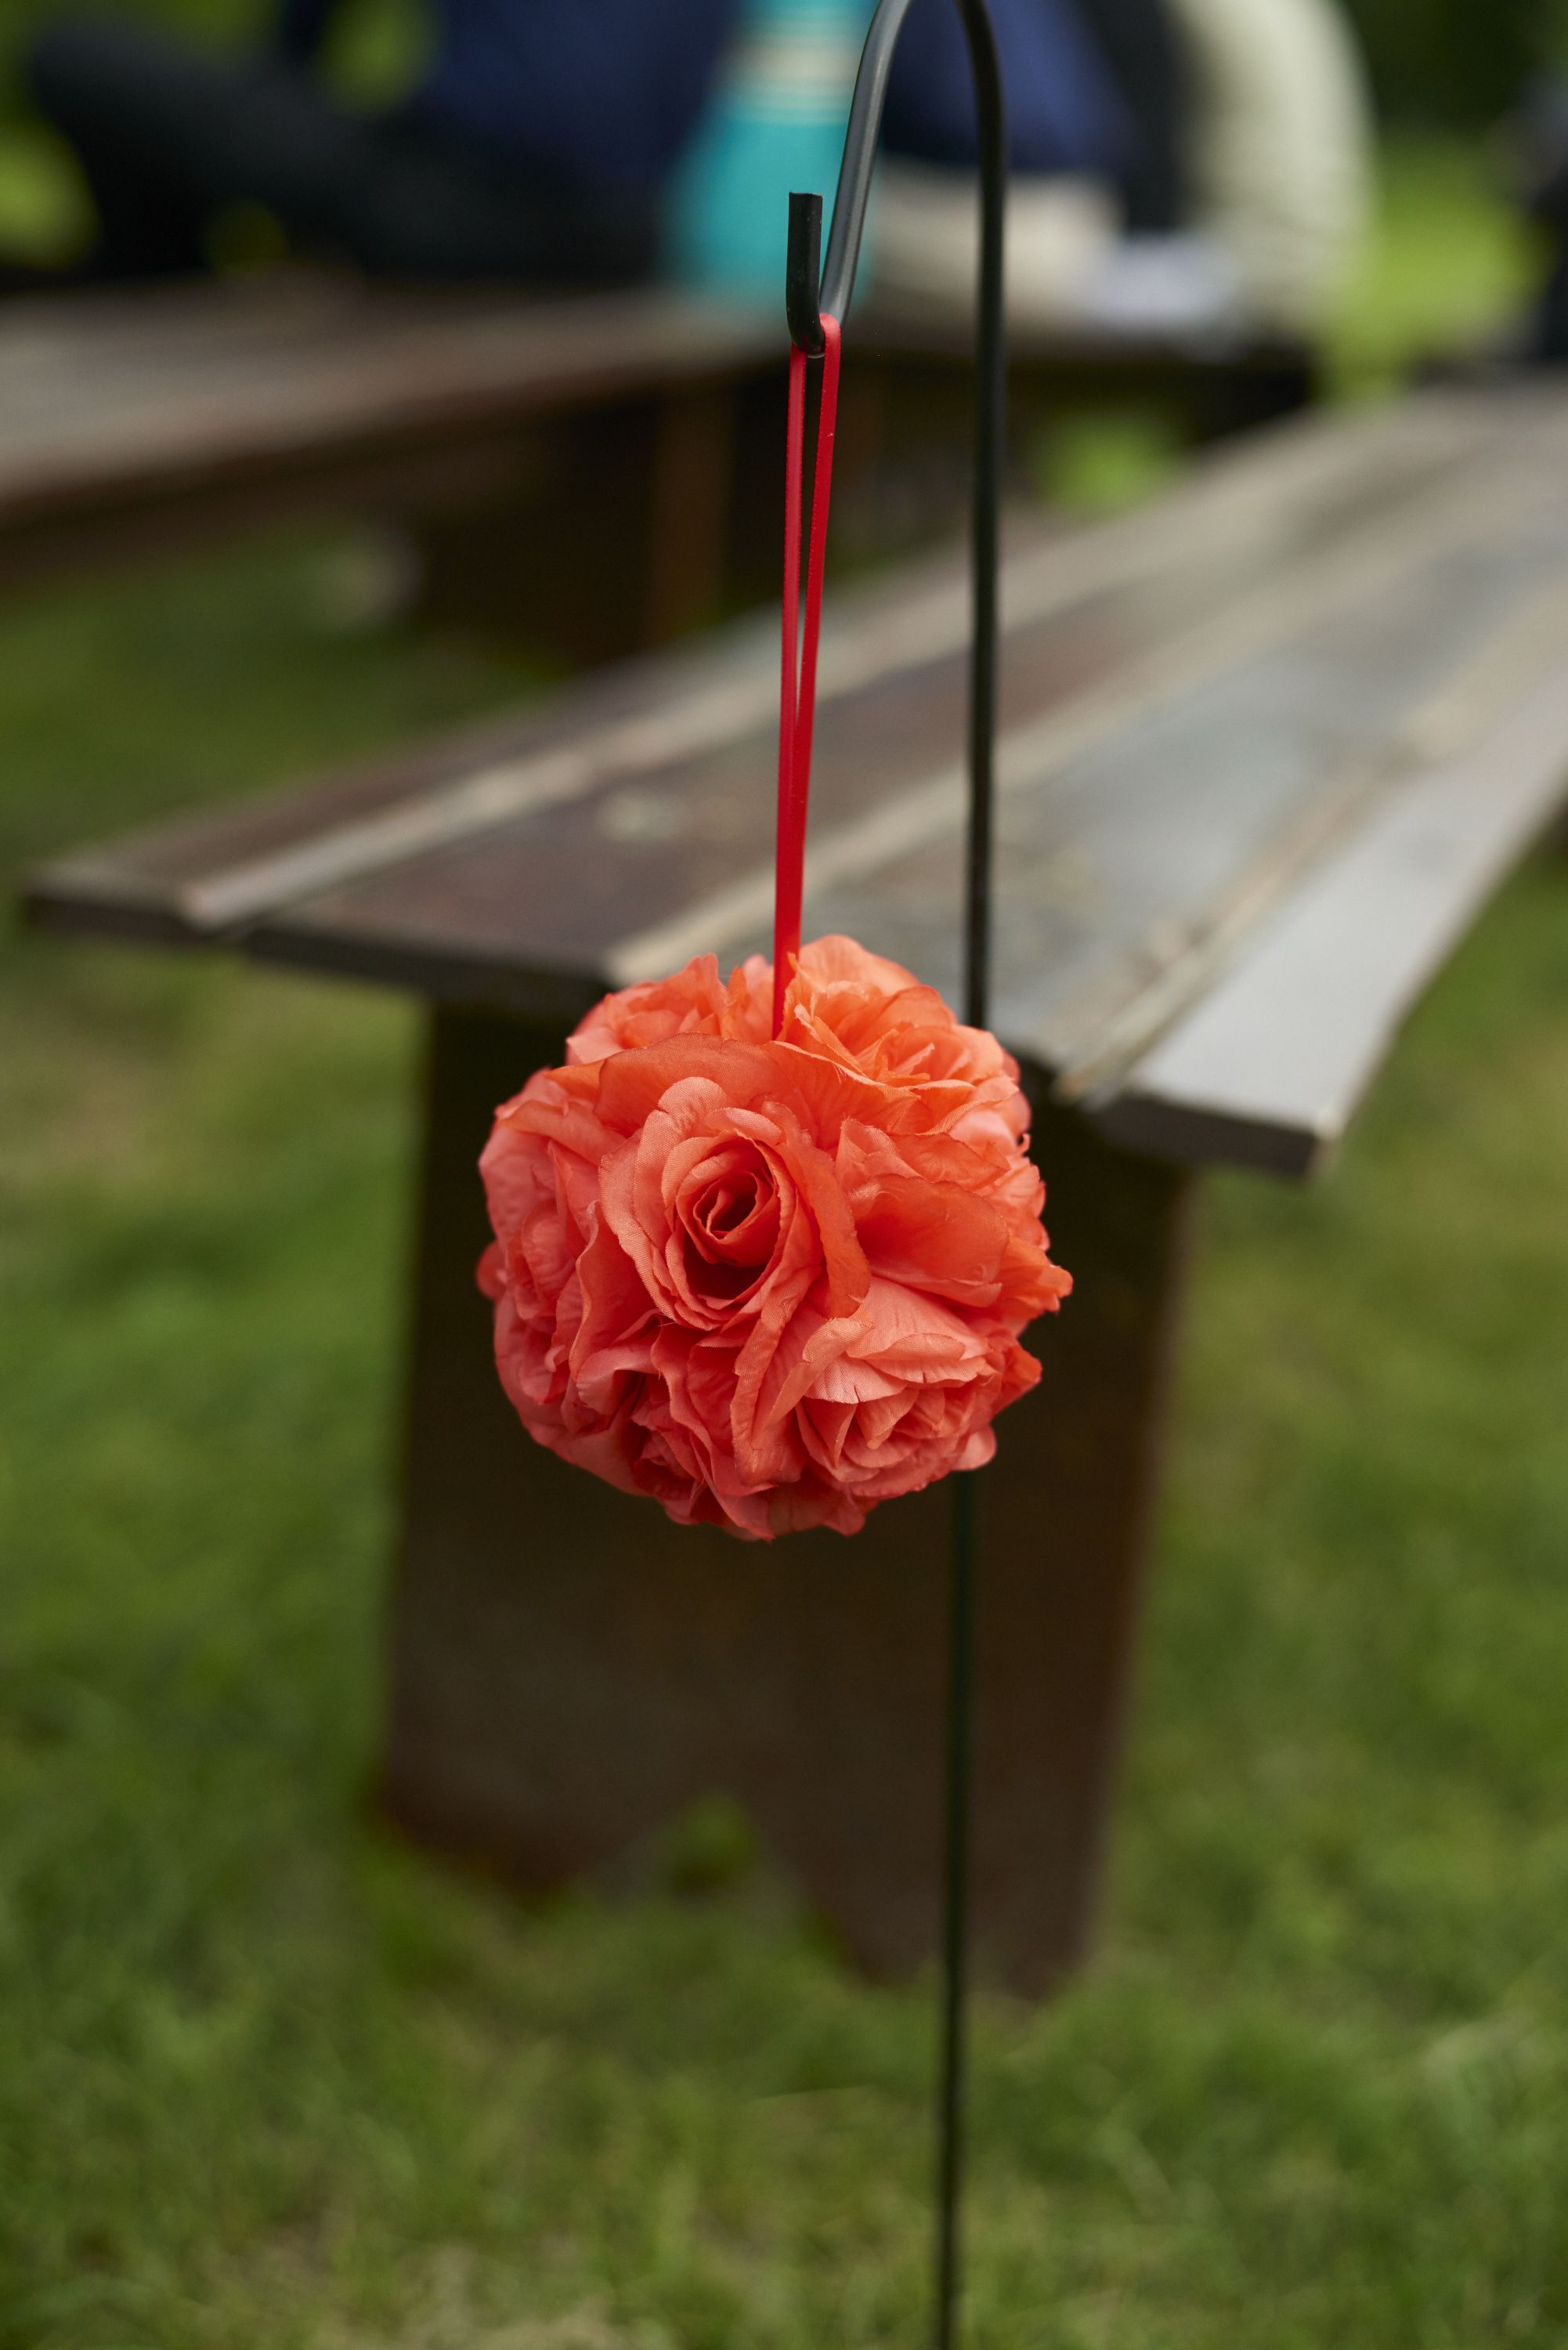 Garden wedding aisle decor  Coral Rose Pomander Aisle Decor  Wedding Ideas  Pinterest  Weddings